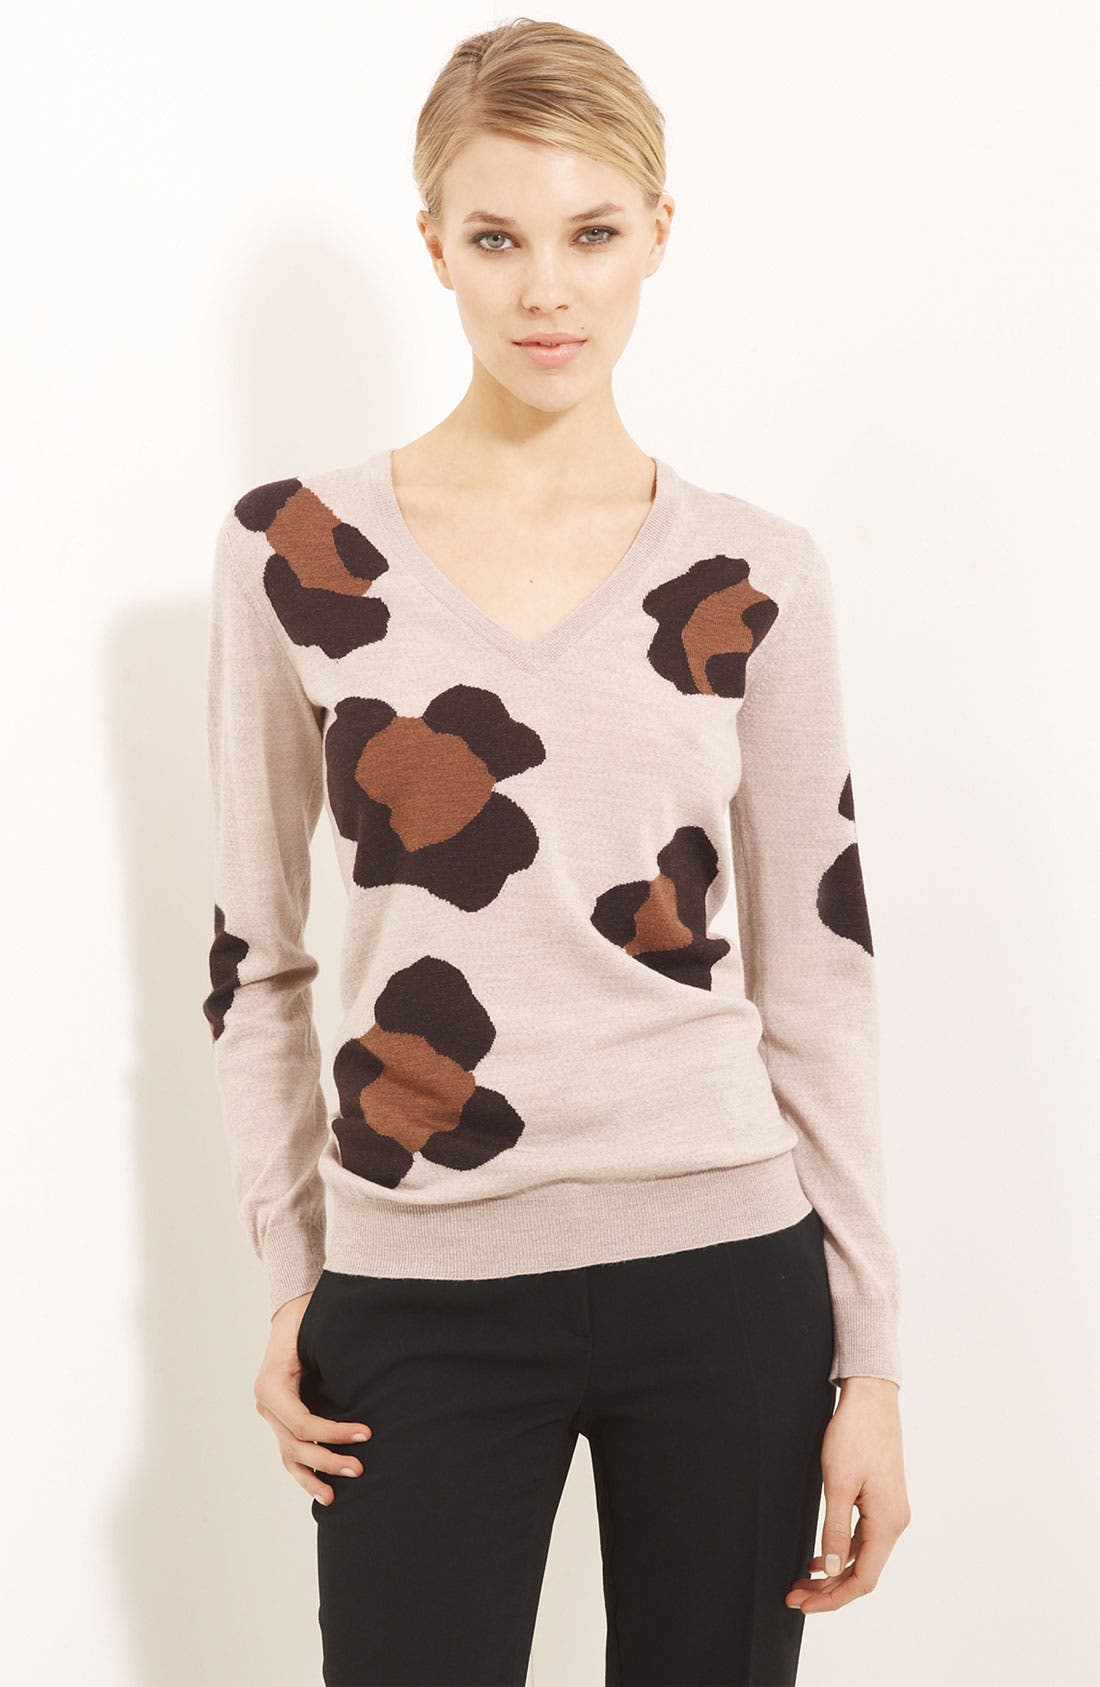 Main Image - Moschino Cheap & Chic Merino Wool Knit Top